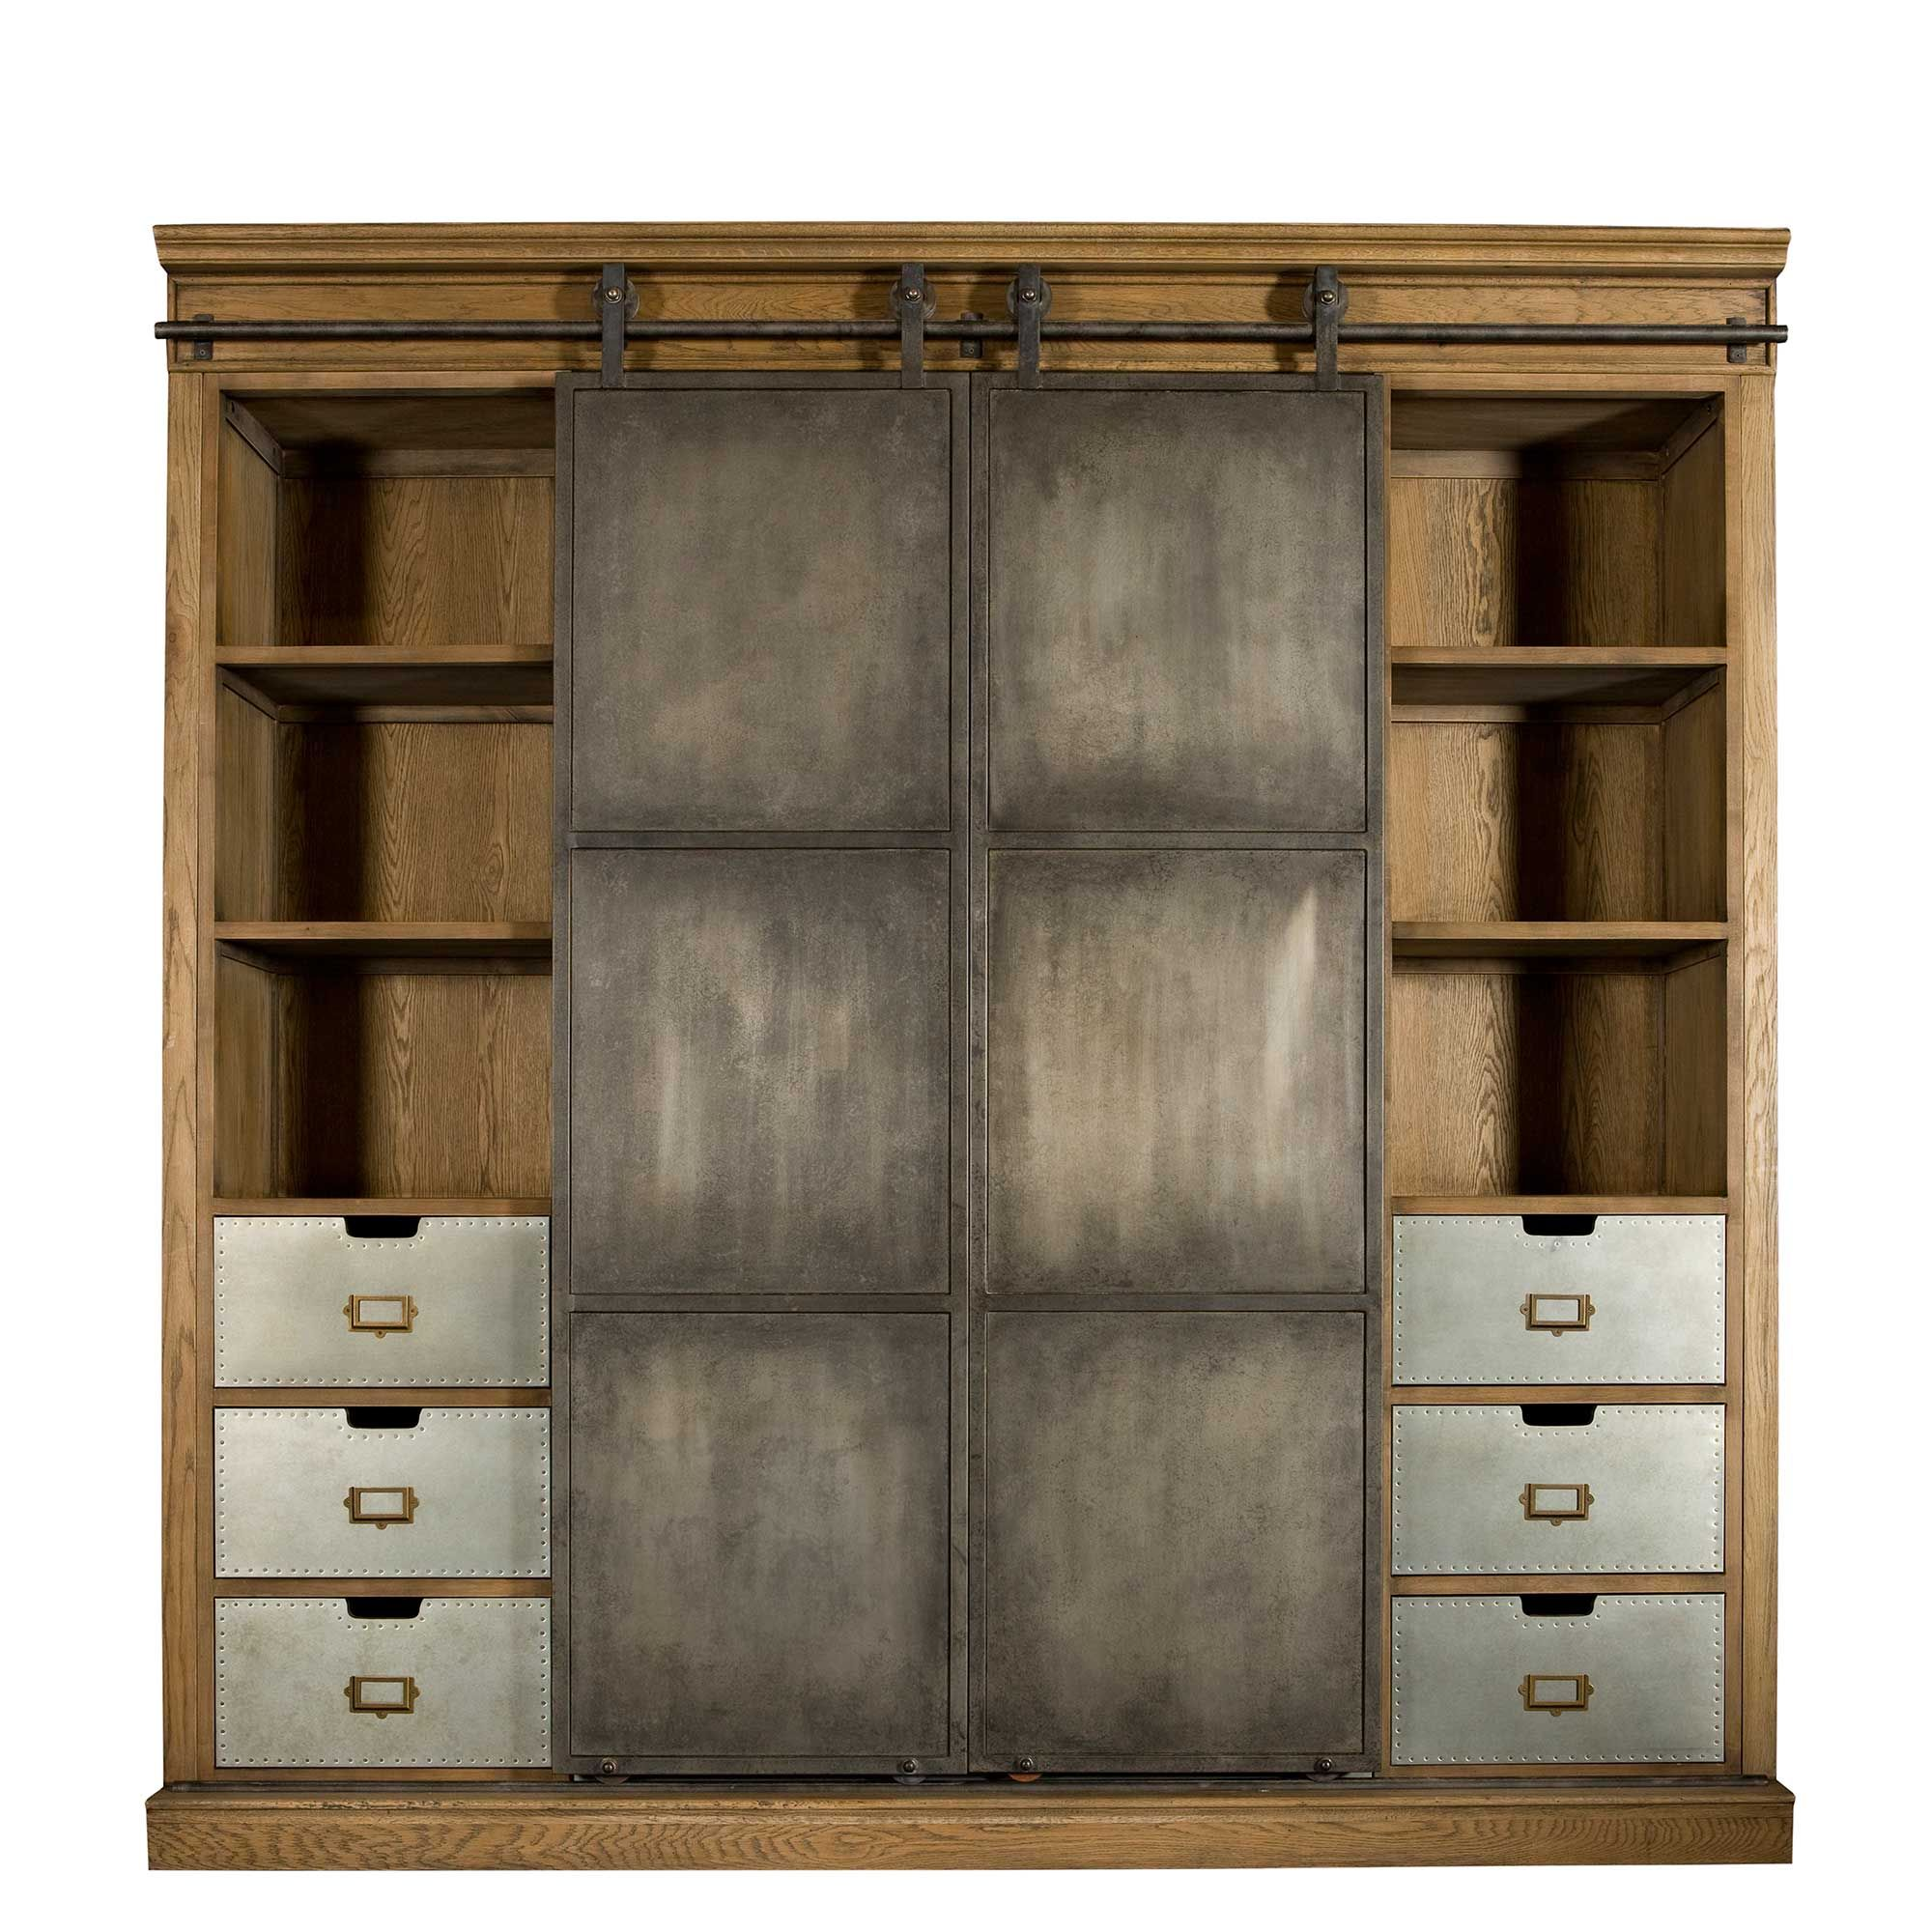 Biblio Industrial Cabinet, Oak Available Online At Barker & Stonehouse